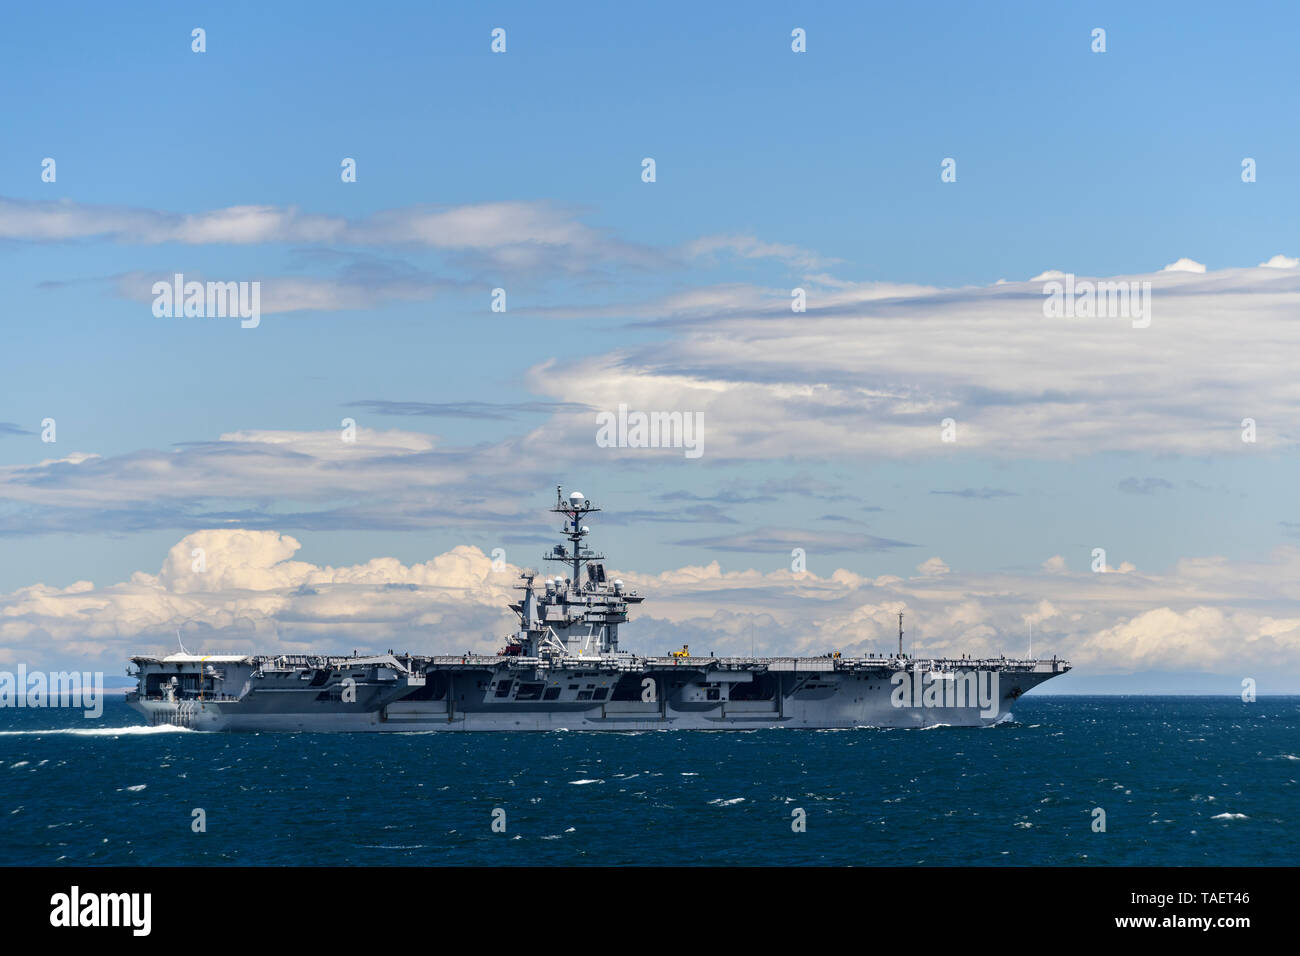 The US nuclear powered aircraft carrier USS John C. Stennis (CVN-74) in the Strait of Juan de Fuca near Port Angeles, Washington State, USA - Stock Image